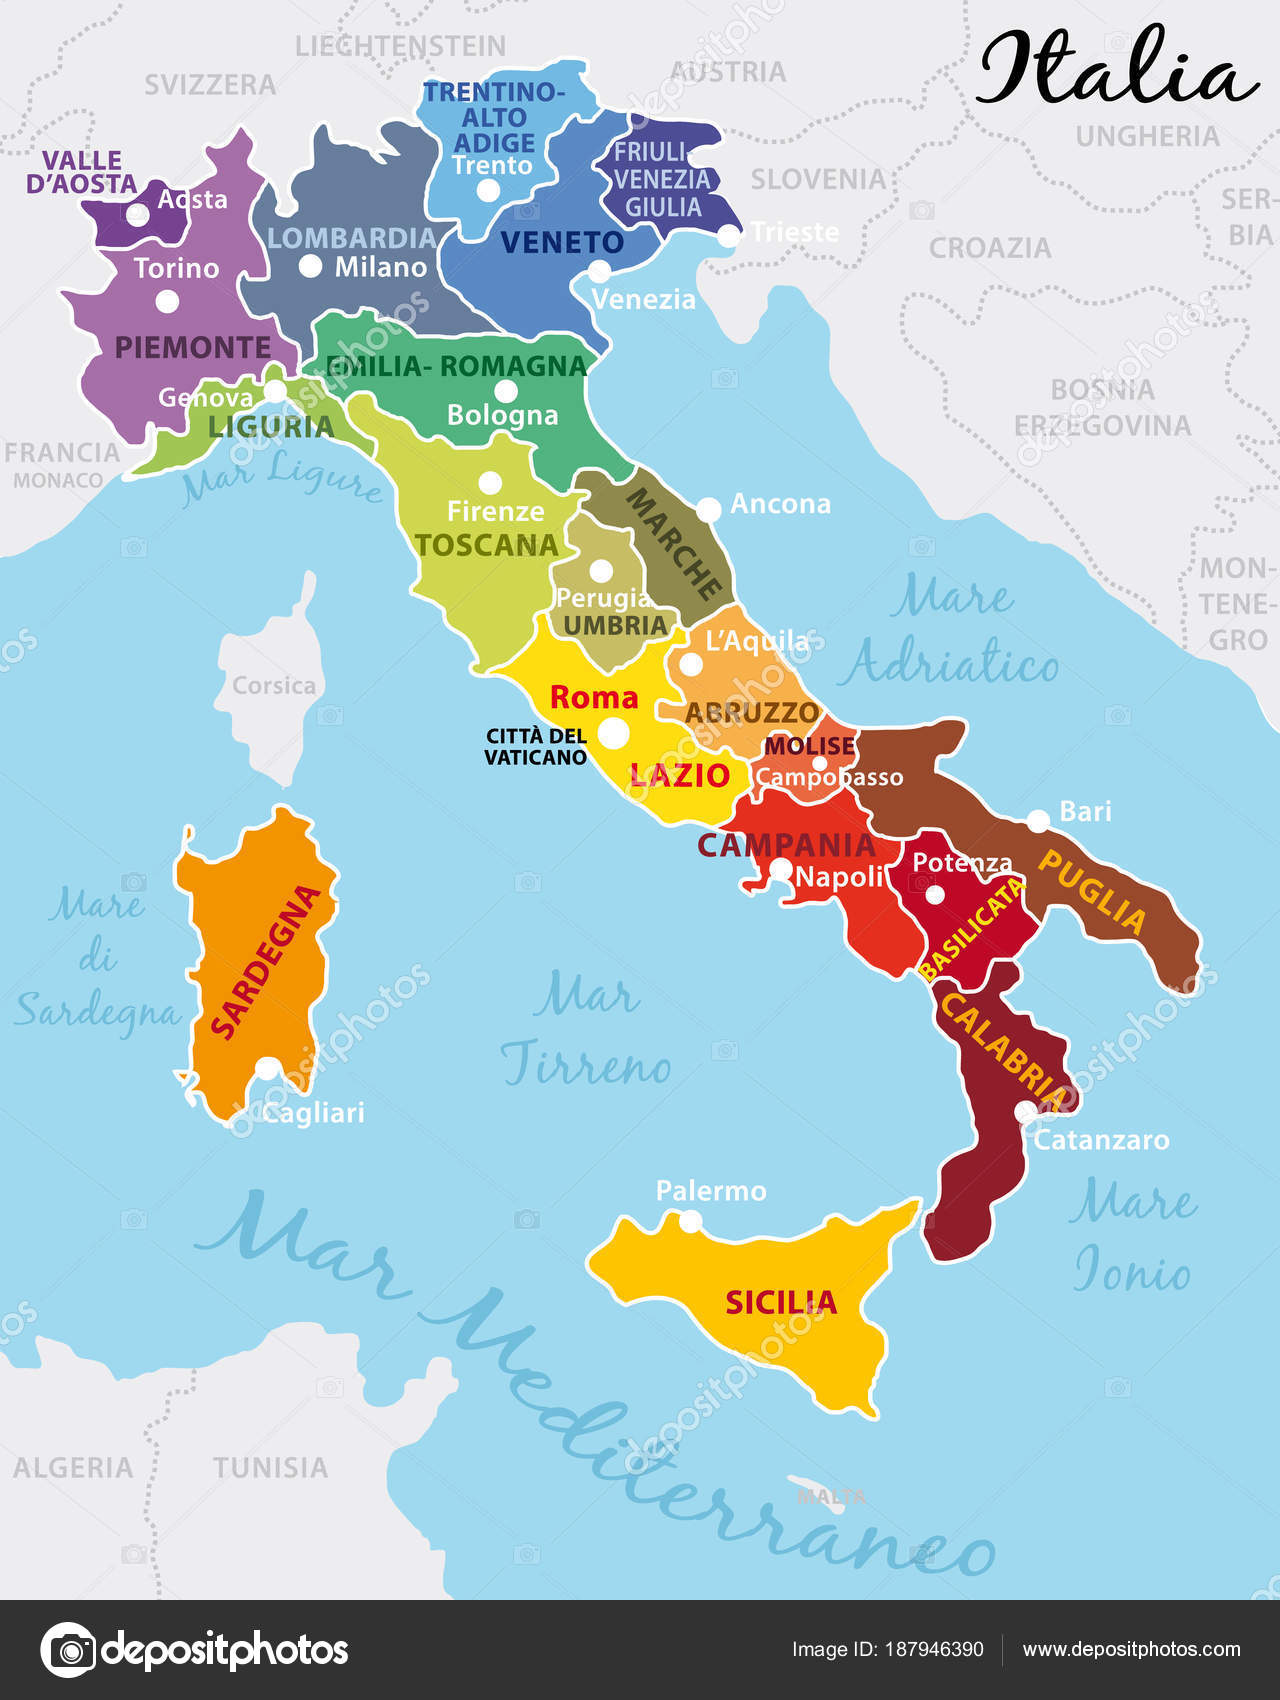 Beautiful Colorful Map Italy Italian Regions Capitals ... on map of oceania cities, map of syria cities, map of japan cities, map of the carolinas cities, map of etruscan cities, map of luxembourg cities, map of switzerland cities, u.s. map cities, map of utah cities, map of s korea cities, map of poland cities, map of guyana cities, map of rome cities, map of democratic republic of congo cities, map of europe cities, map of french cities, map of central mexico cities, map of mid atlantic cities, map of gulf of mexico cities, map of niger cities,